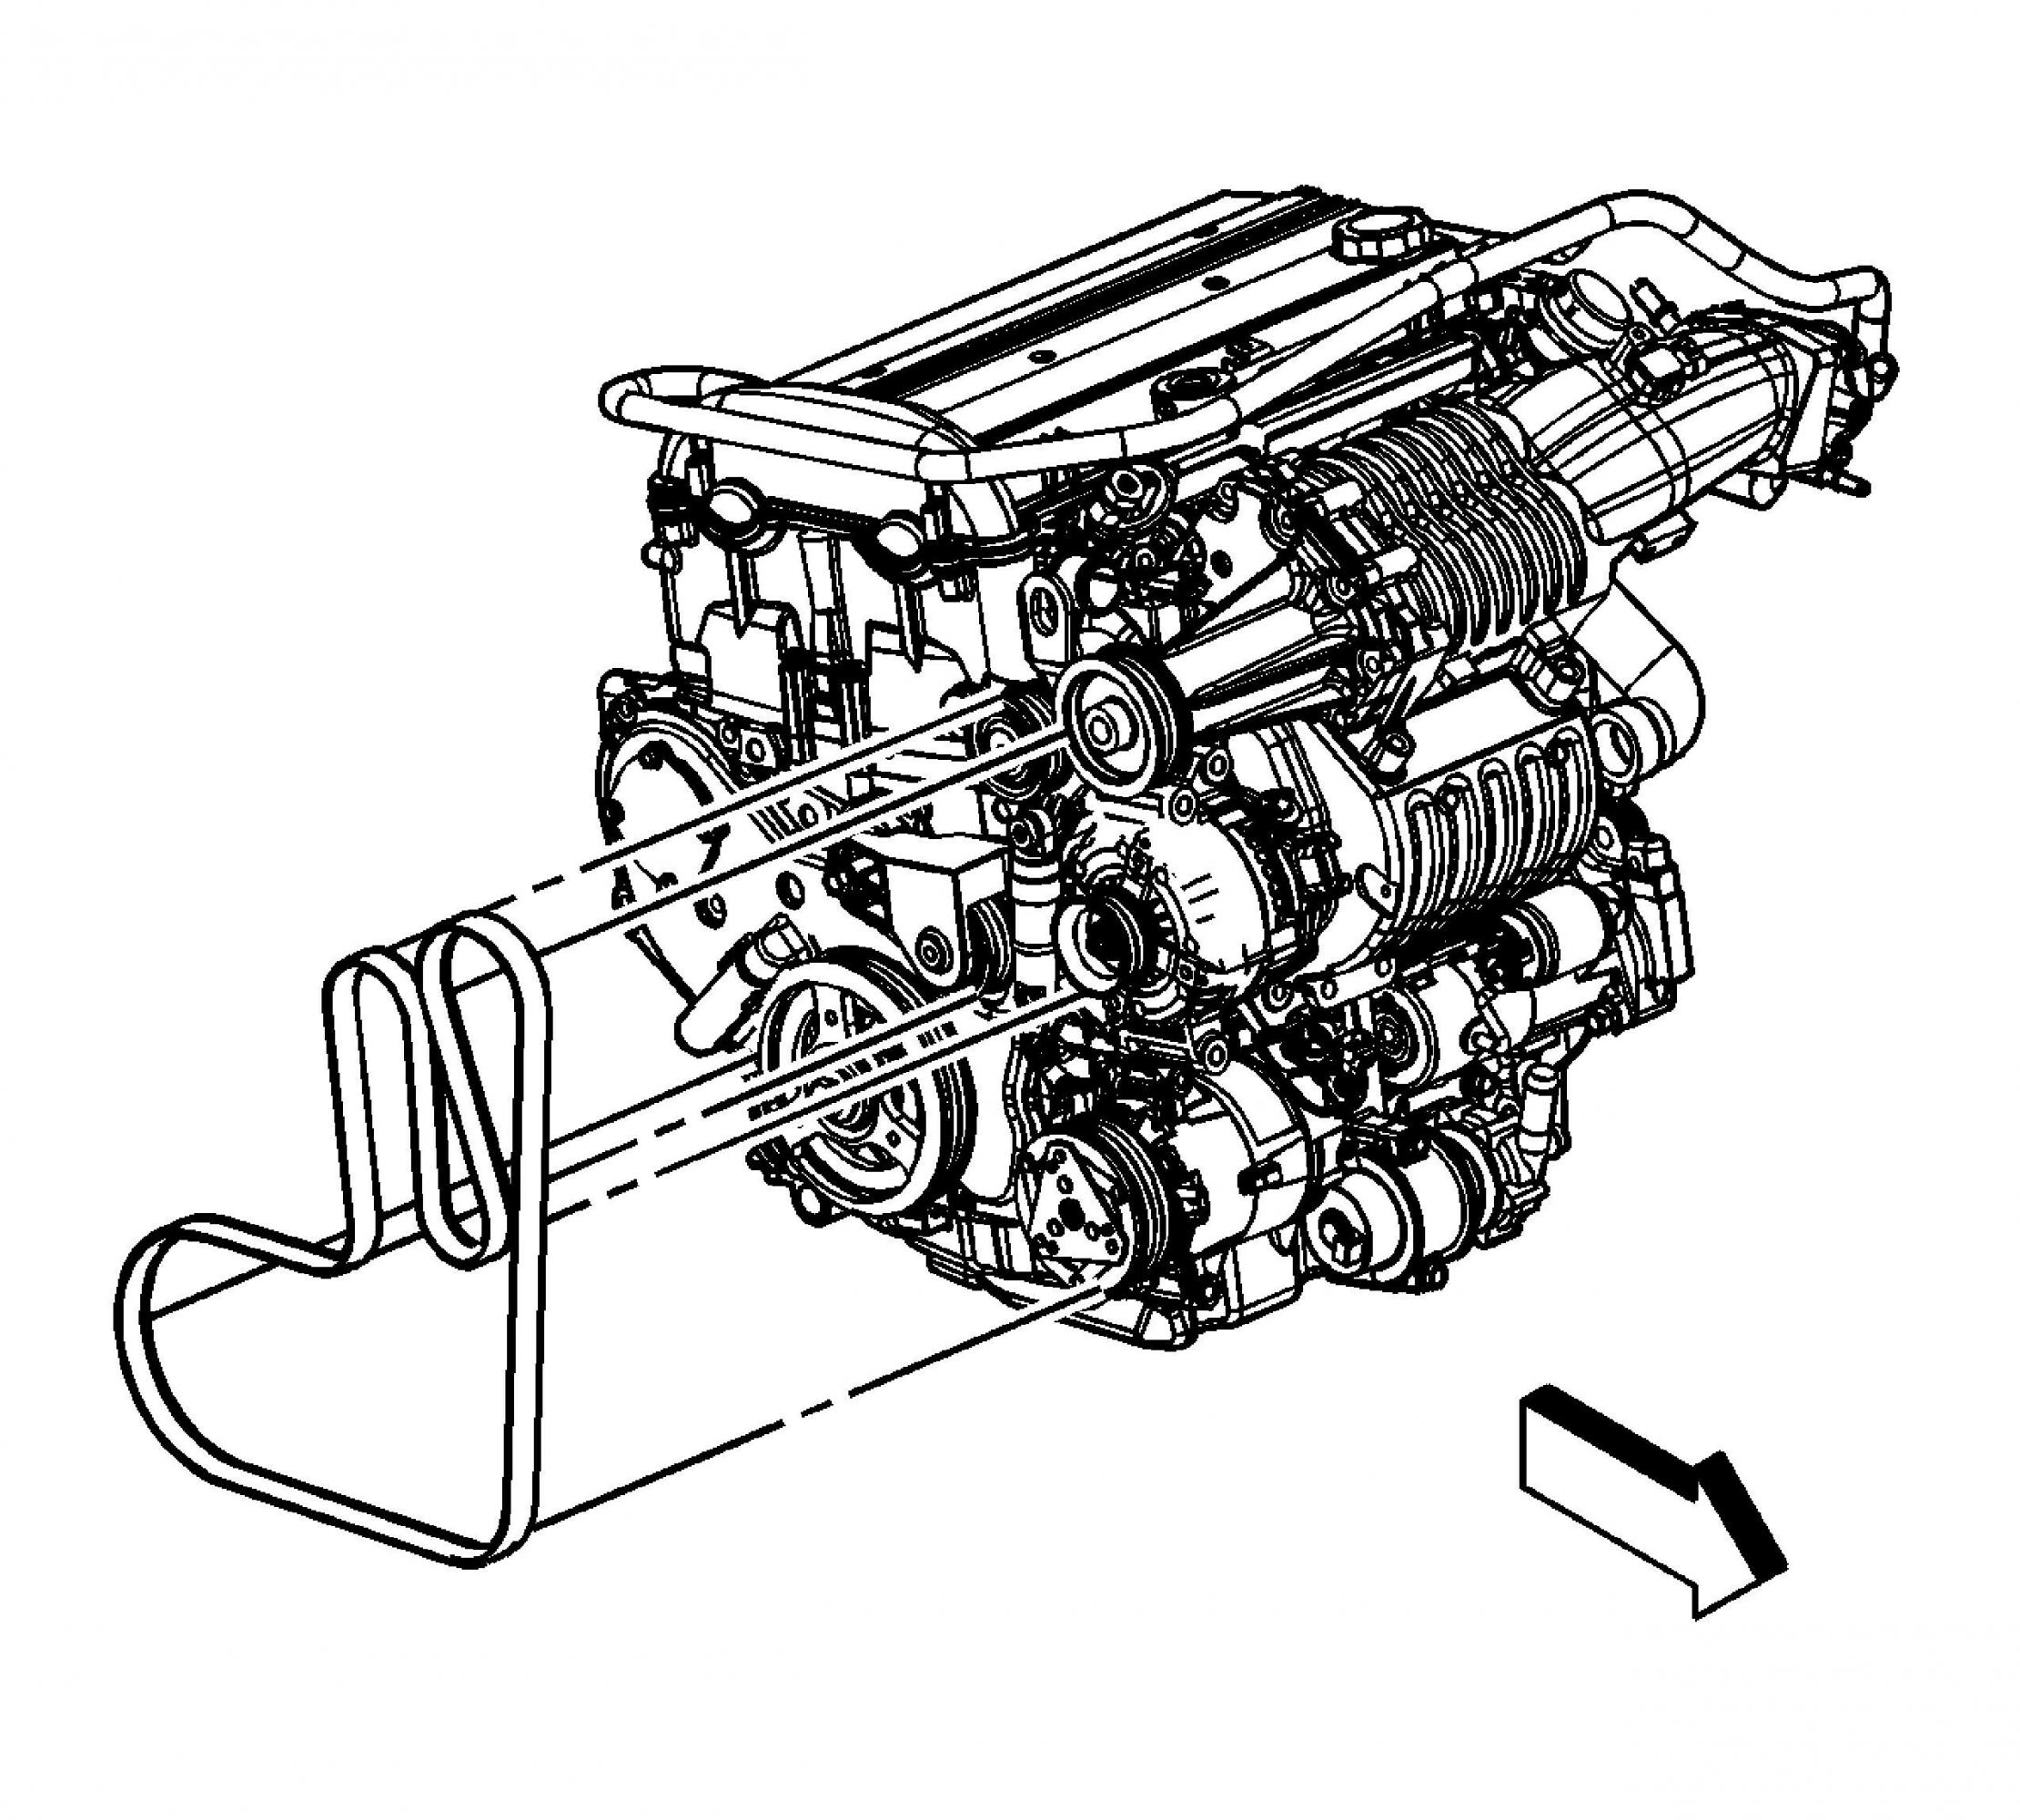 Chevy Cobalt Throttle Sensor Diagram